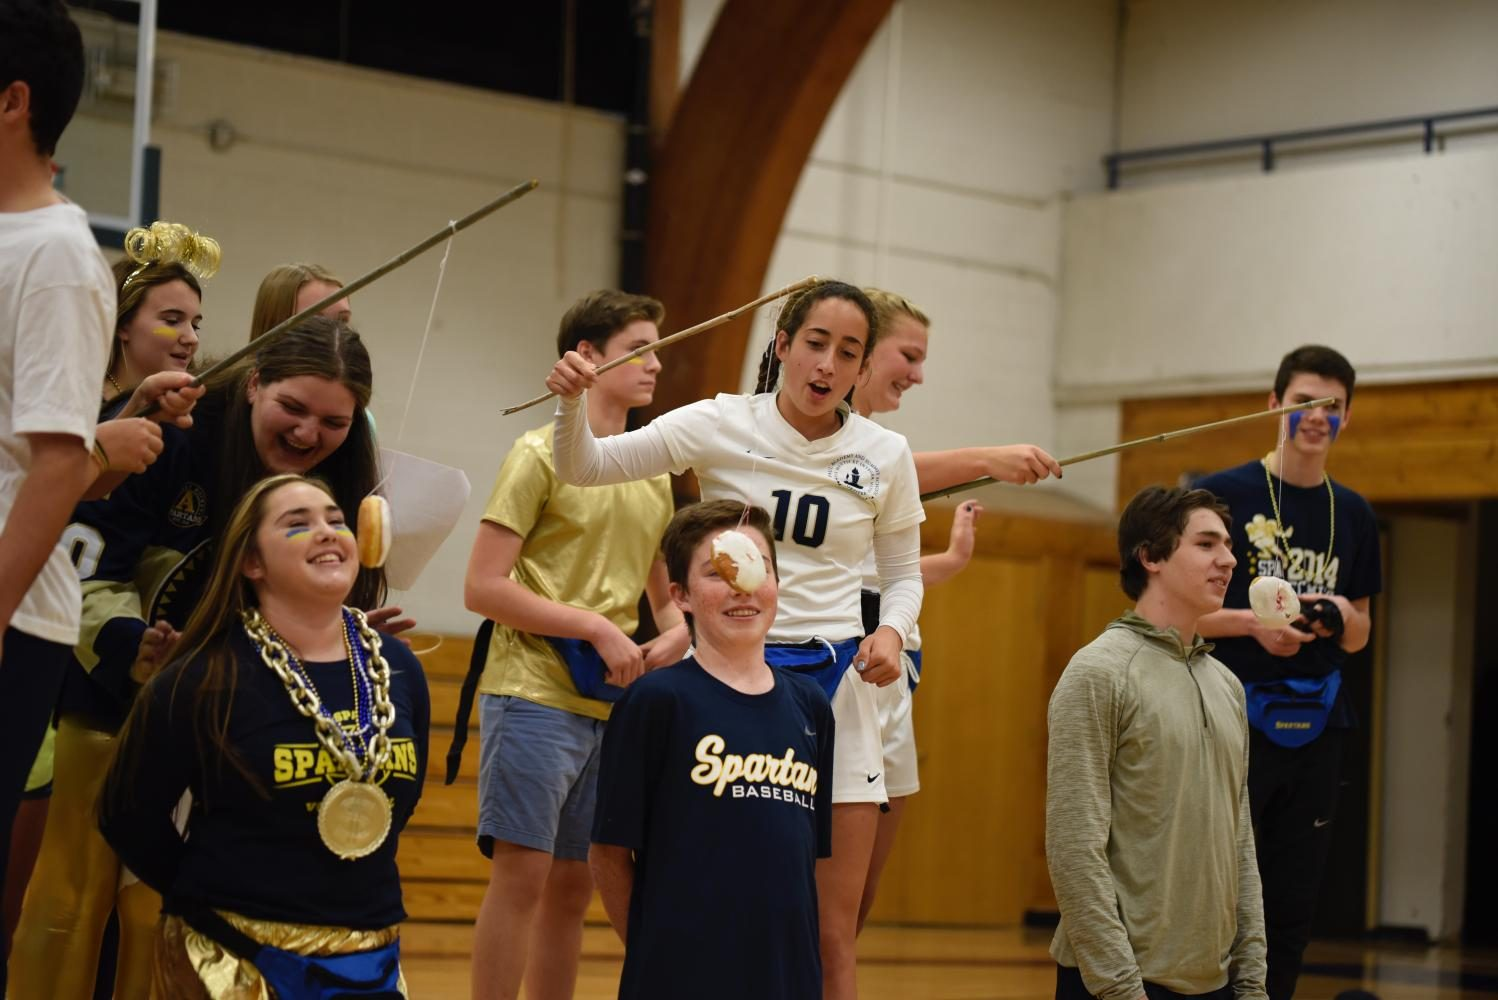 SAC members hold donuts on strings for student volunteers to compete and eat at Pep Fest.